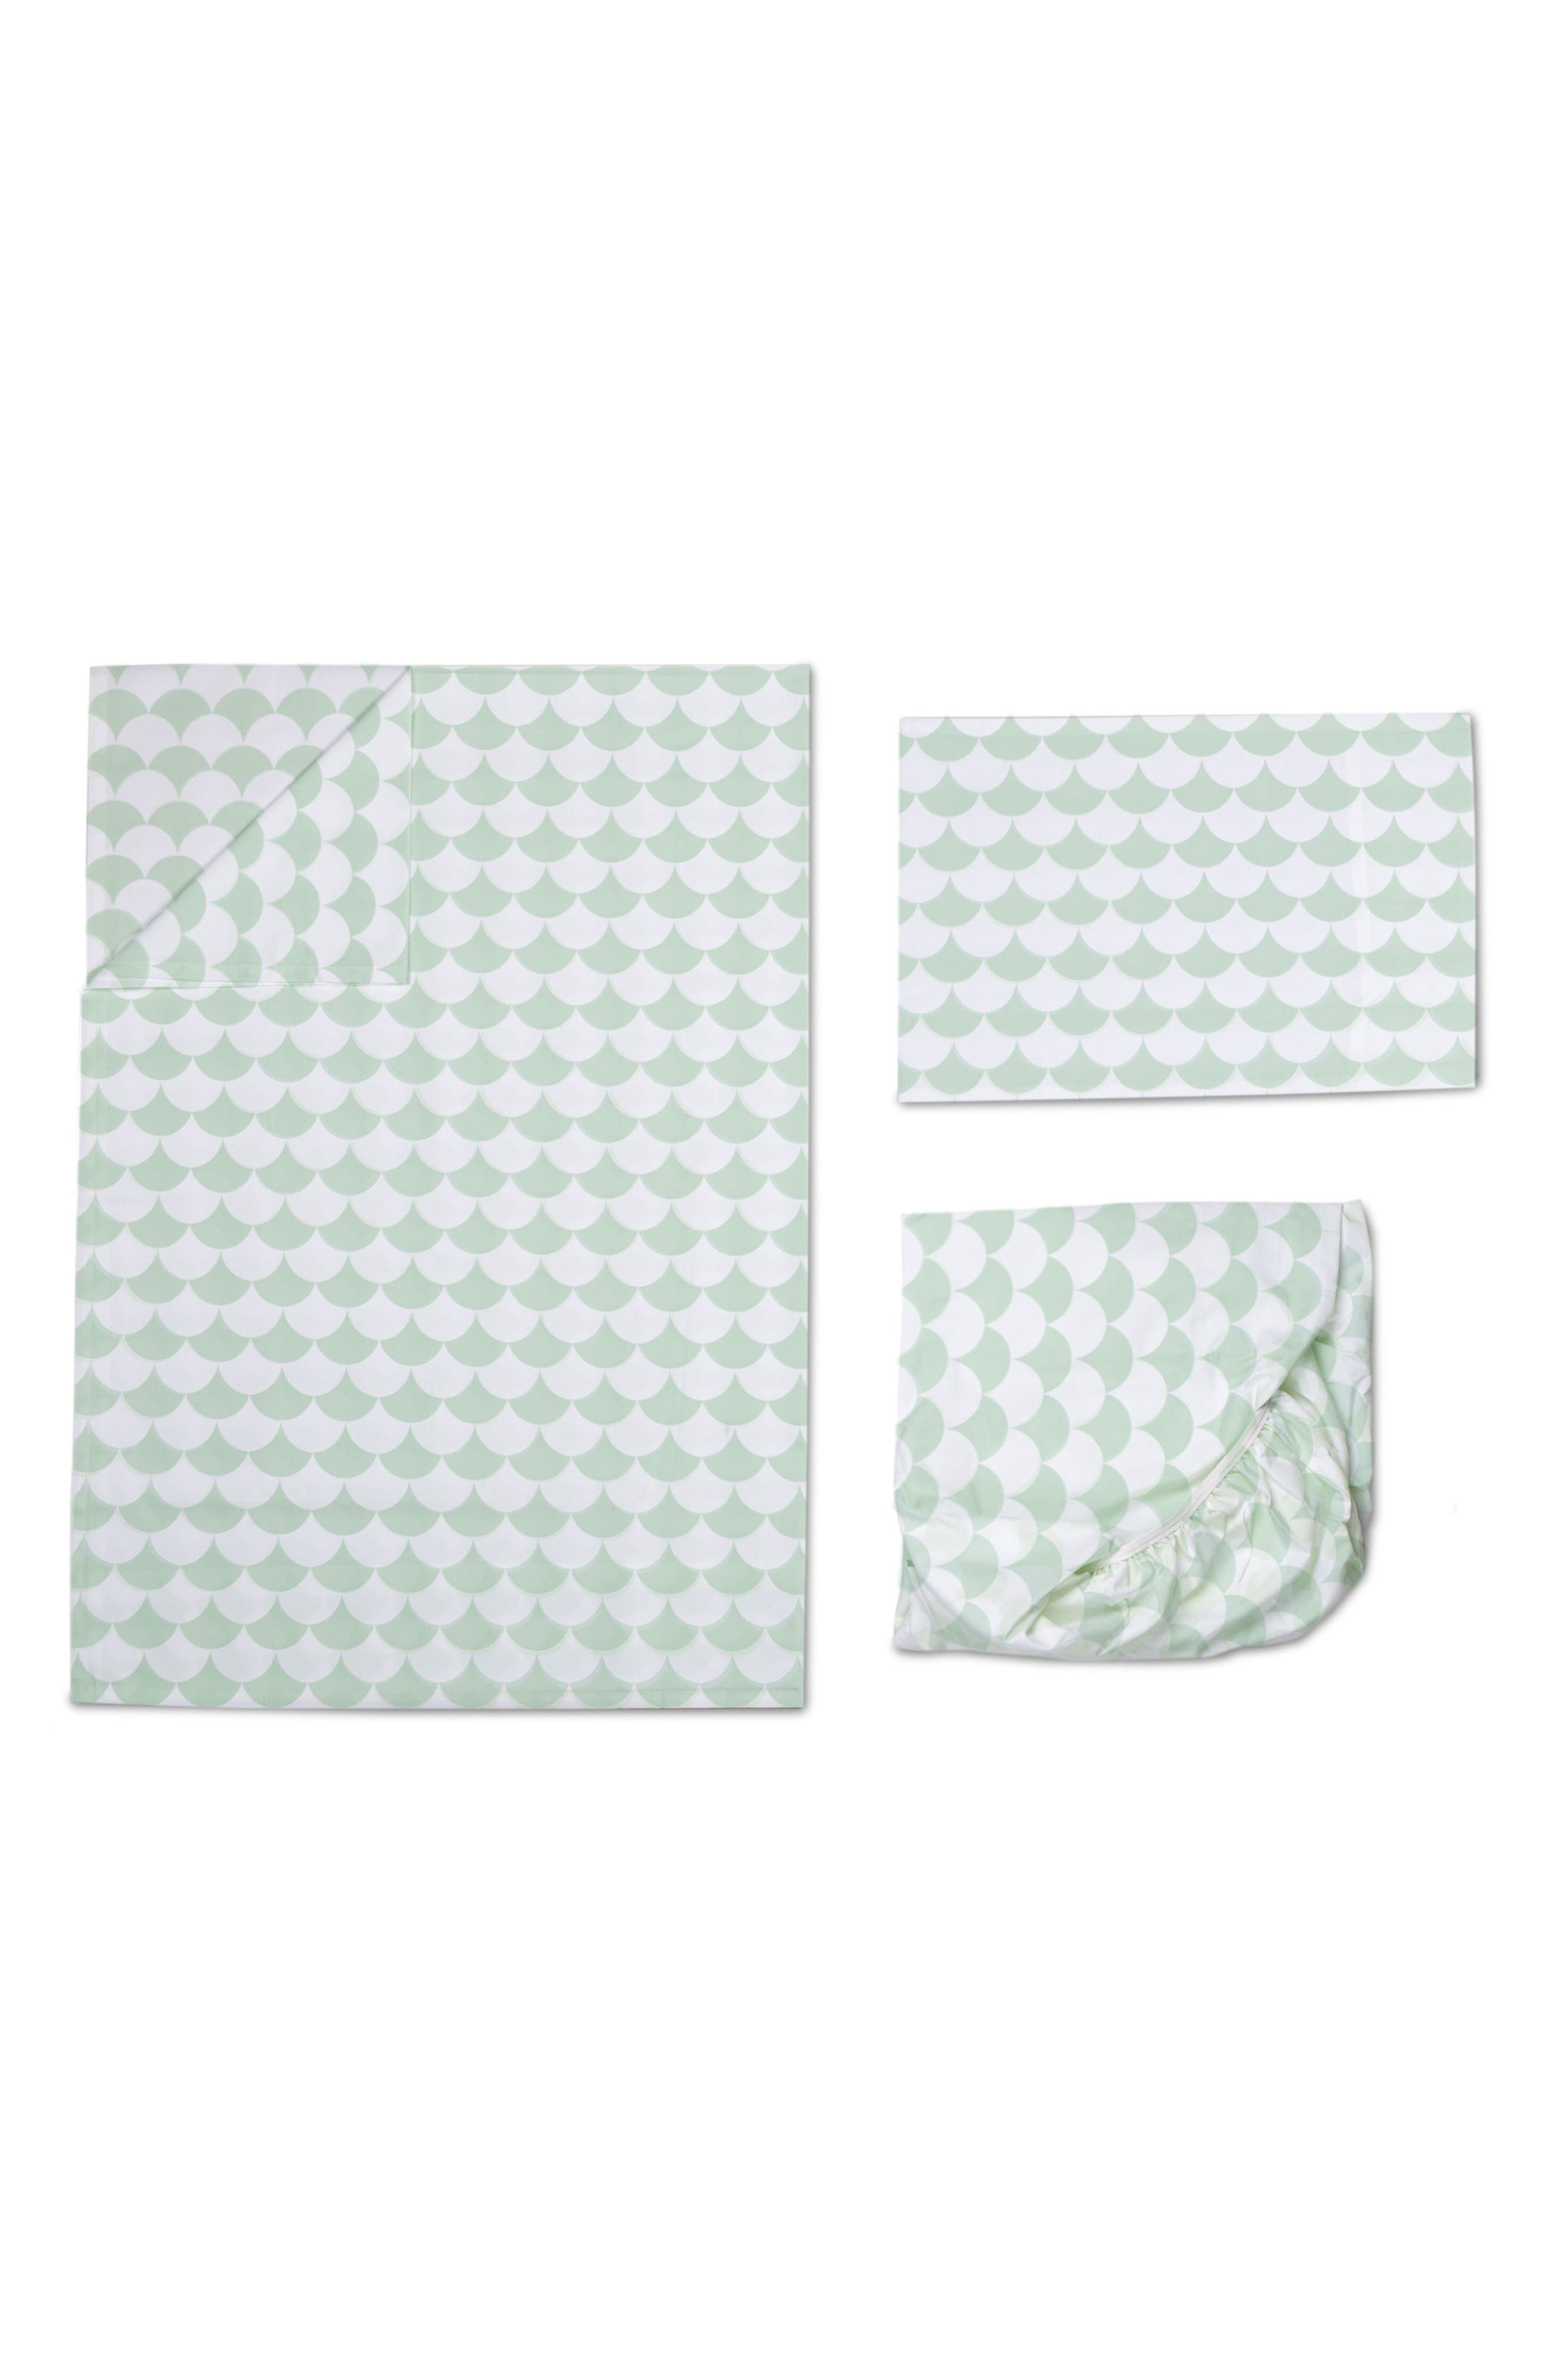 200 Thread Count Toddler Sheet Set,                         Main,                         color, Sea Glass Green Scallops